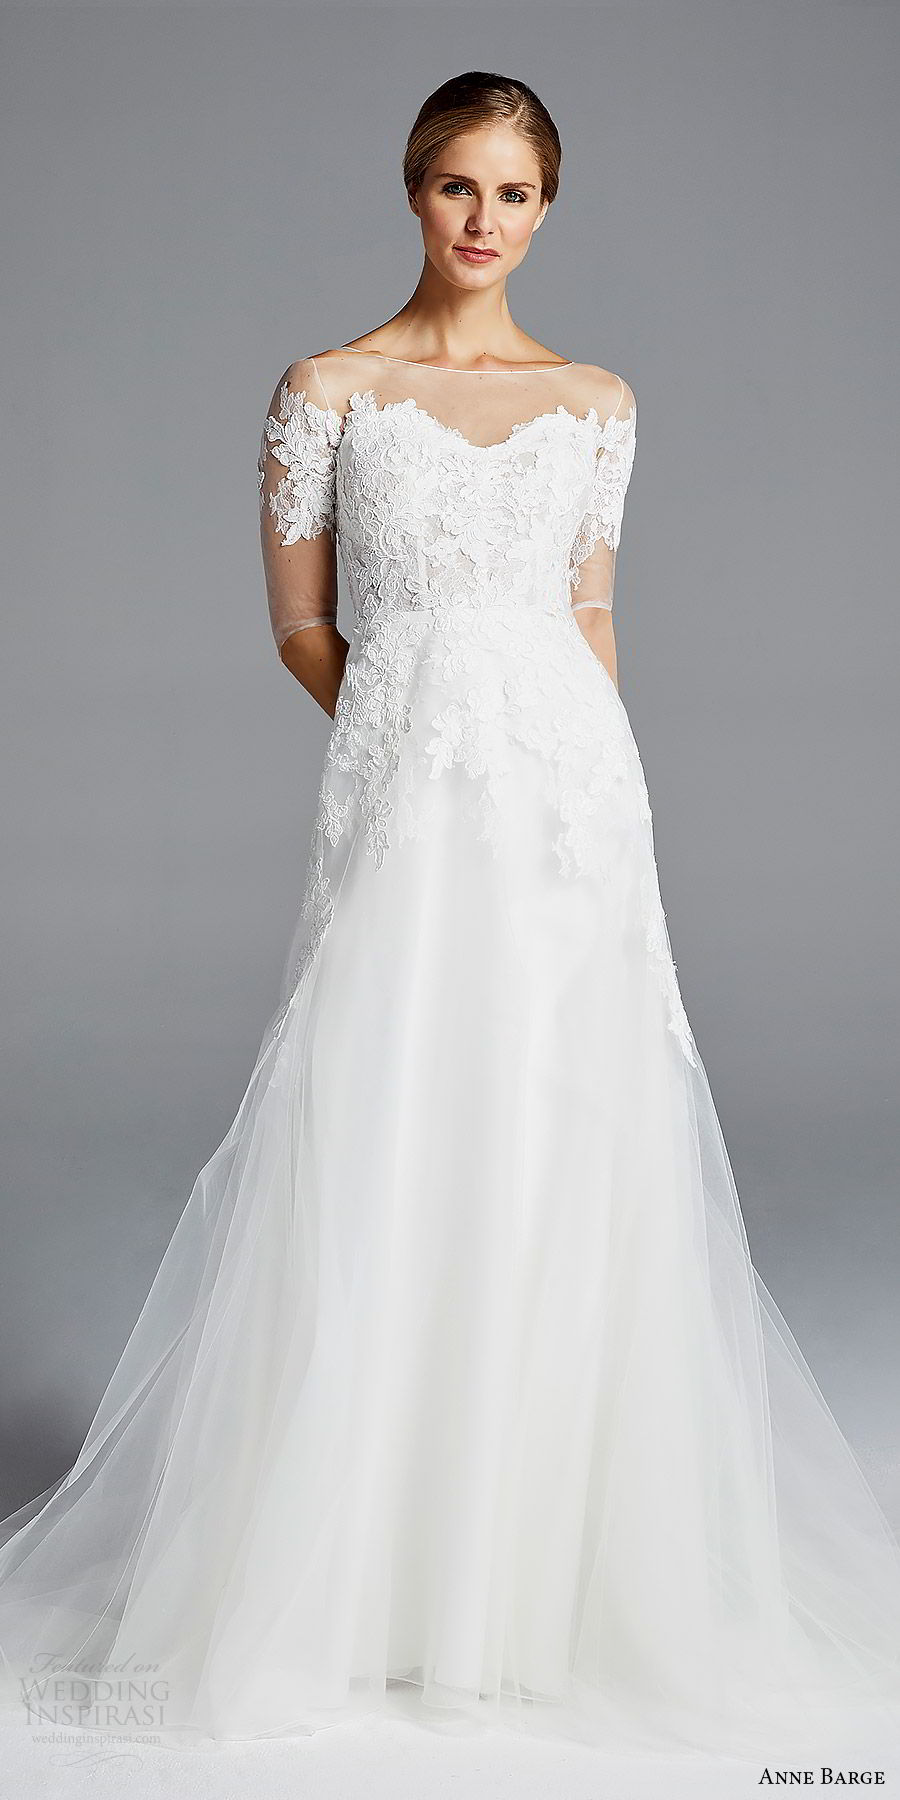 anne barge bridal spring 2019 3 quarter illusion sleeves sheer bateau neck sweetheart lace bodice a line wedding dress (rossallini) mv romantic elegant illusion back chapel train